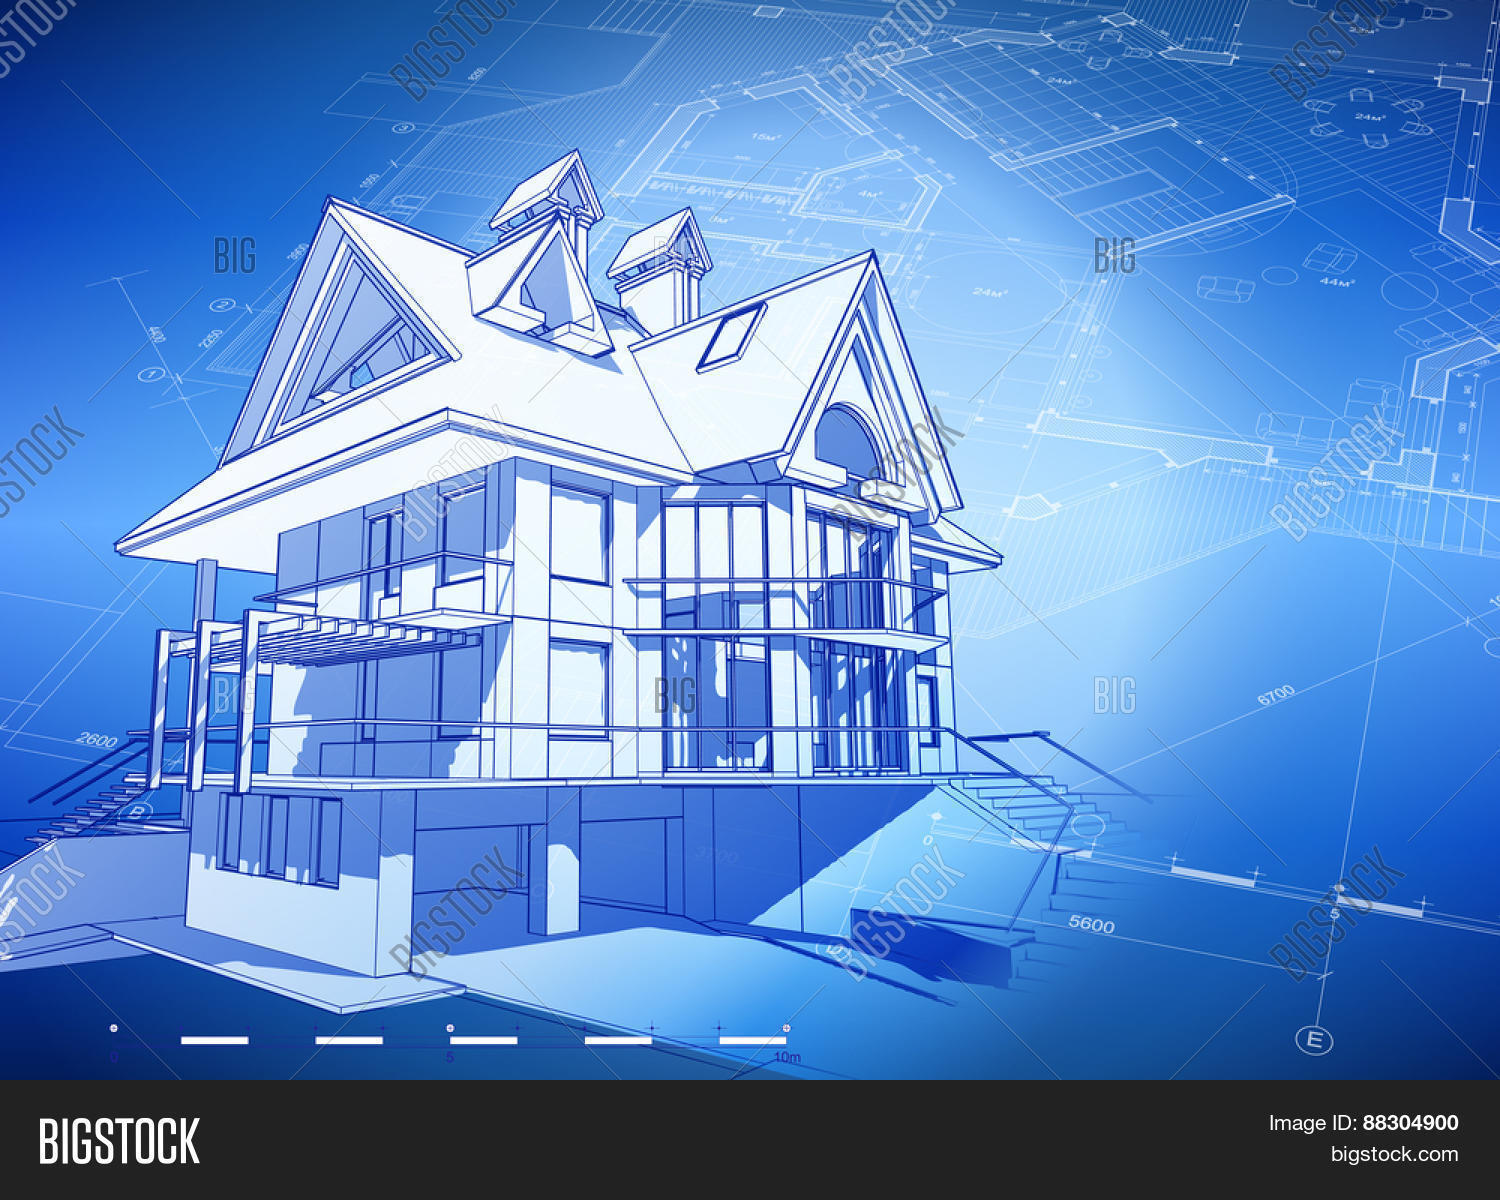 Architecture Design: Blueprint 3d Vector & Photo | Bigstock